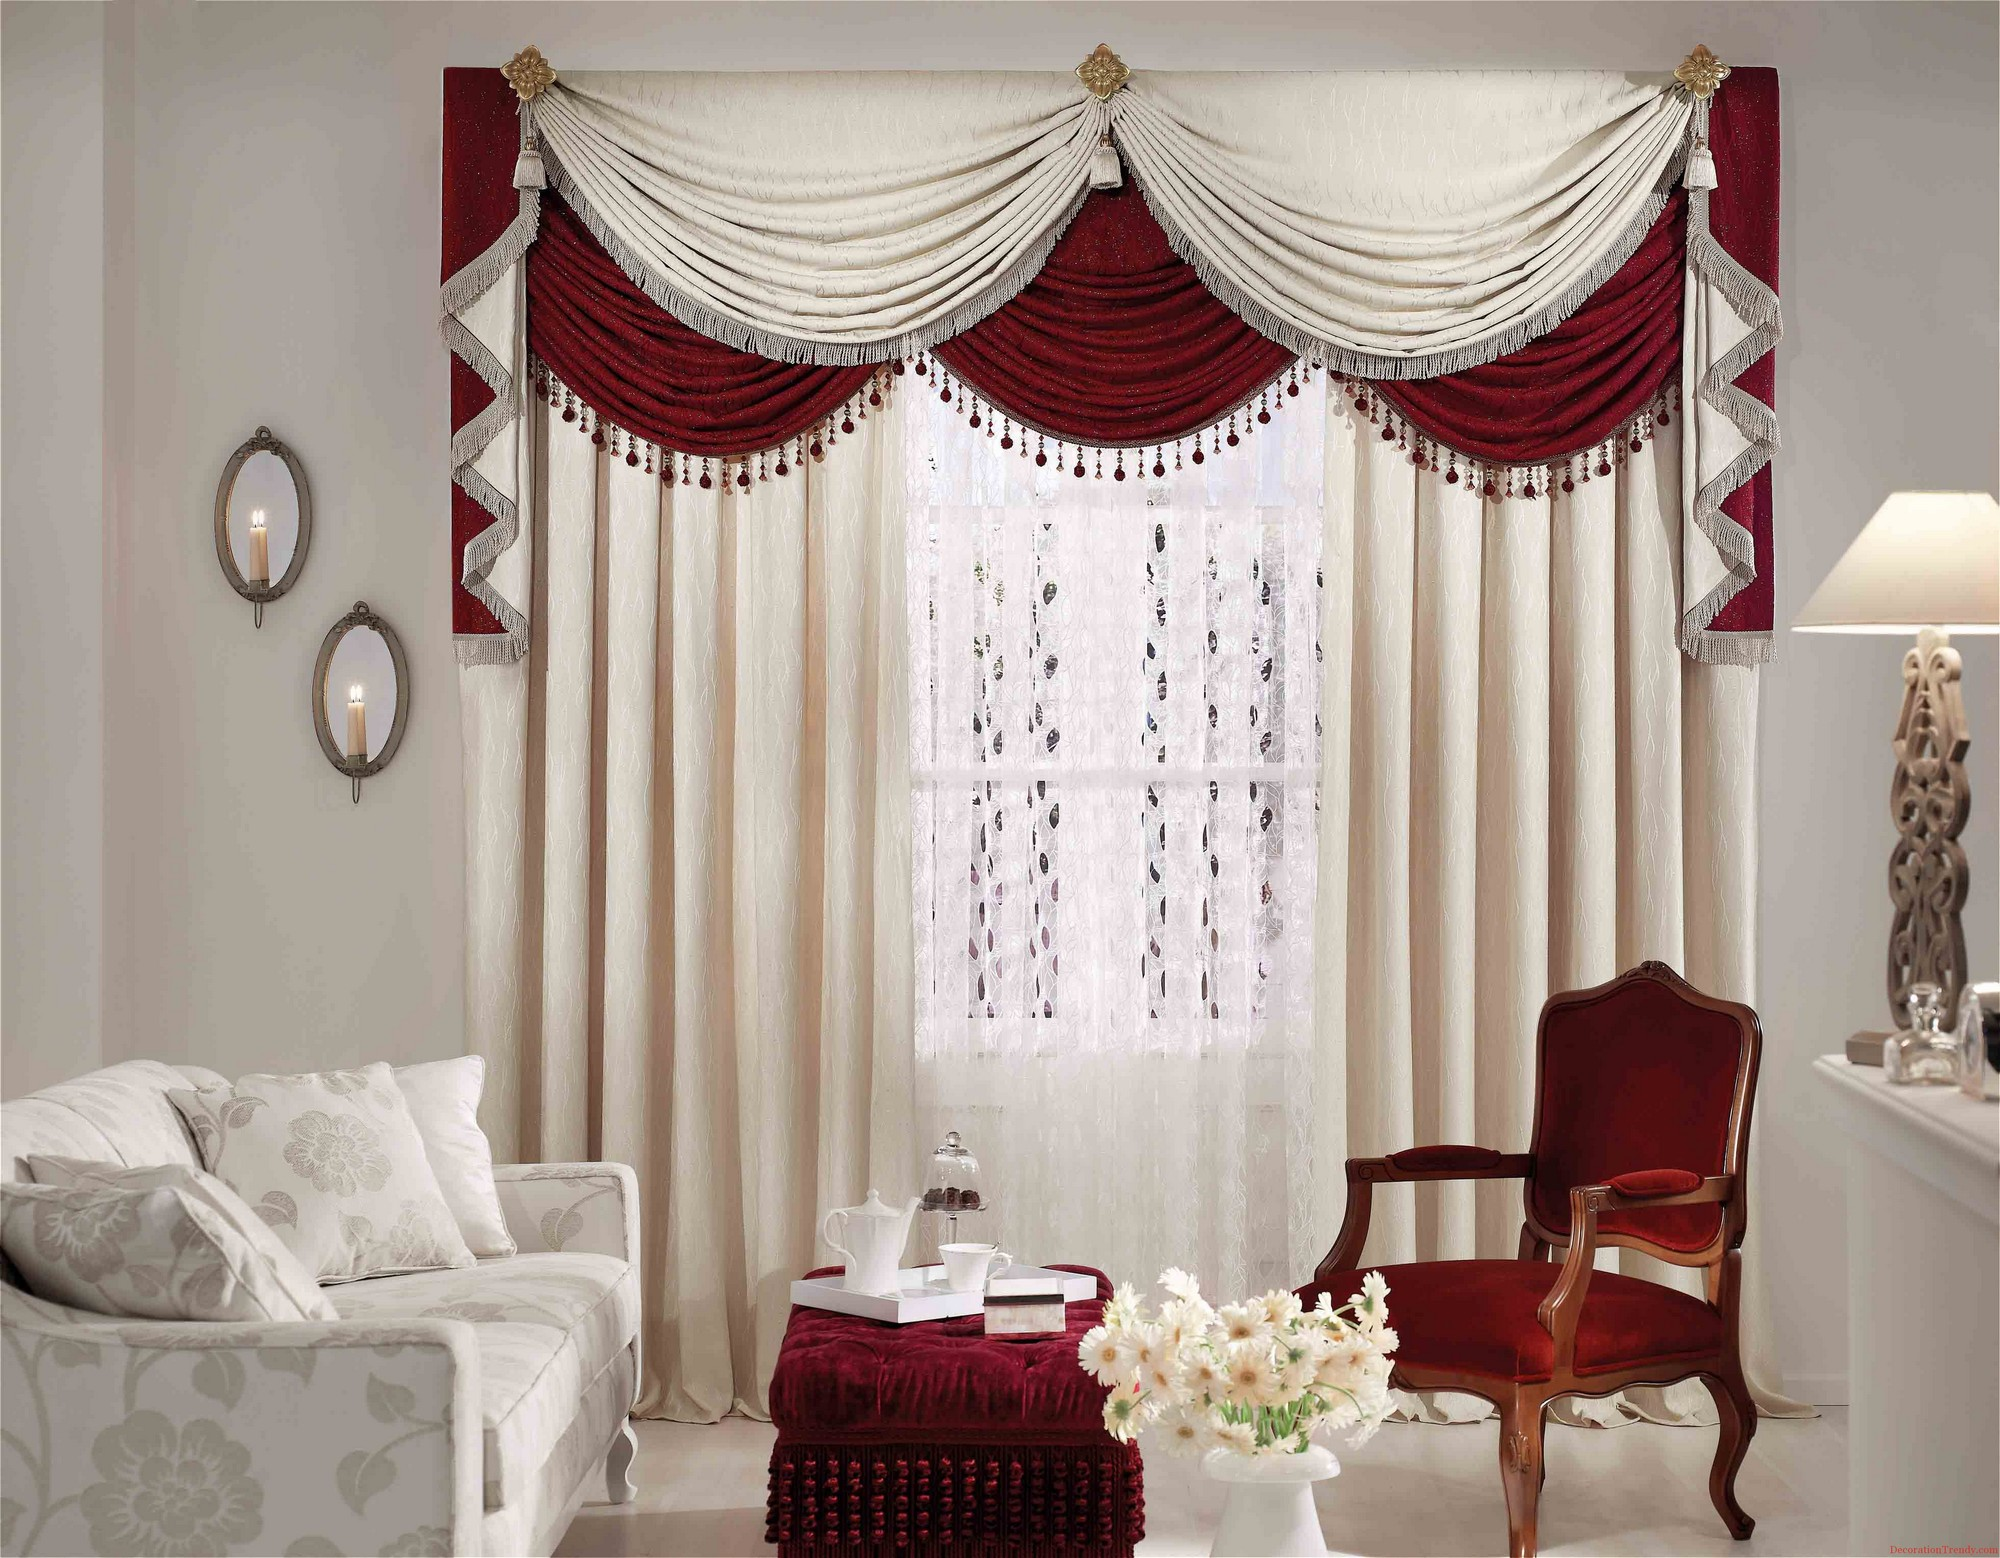 Gorgeous Living Room Curtains facing White Flowery Sofa and Red Chair beside Tufted Ottoman